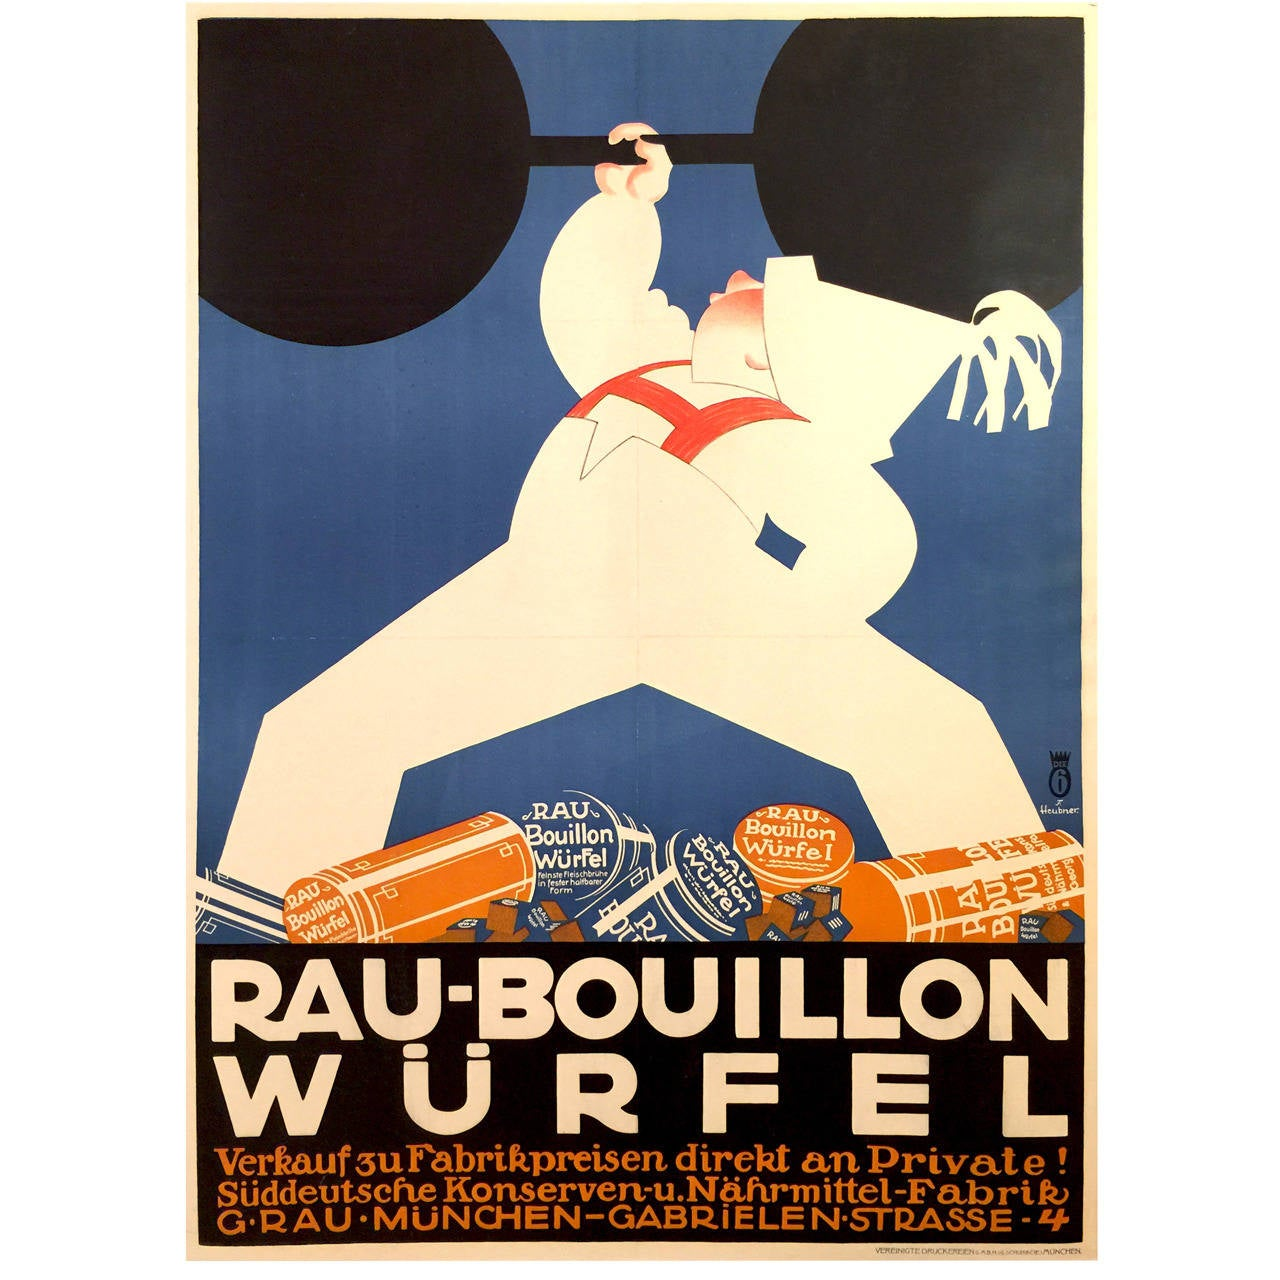 German Art Deco Poster for Rau-Bouillon Wurfel, 1930